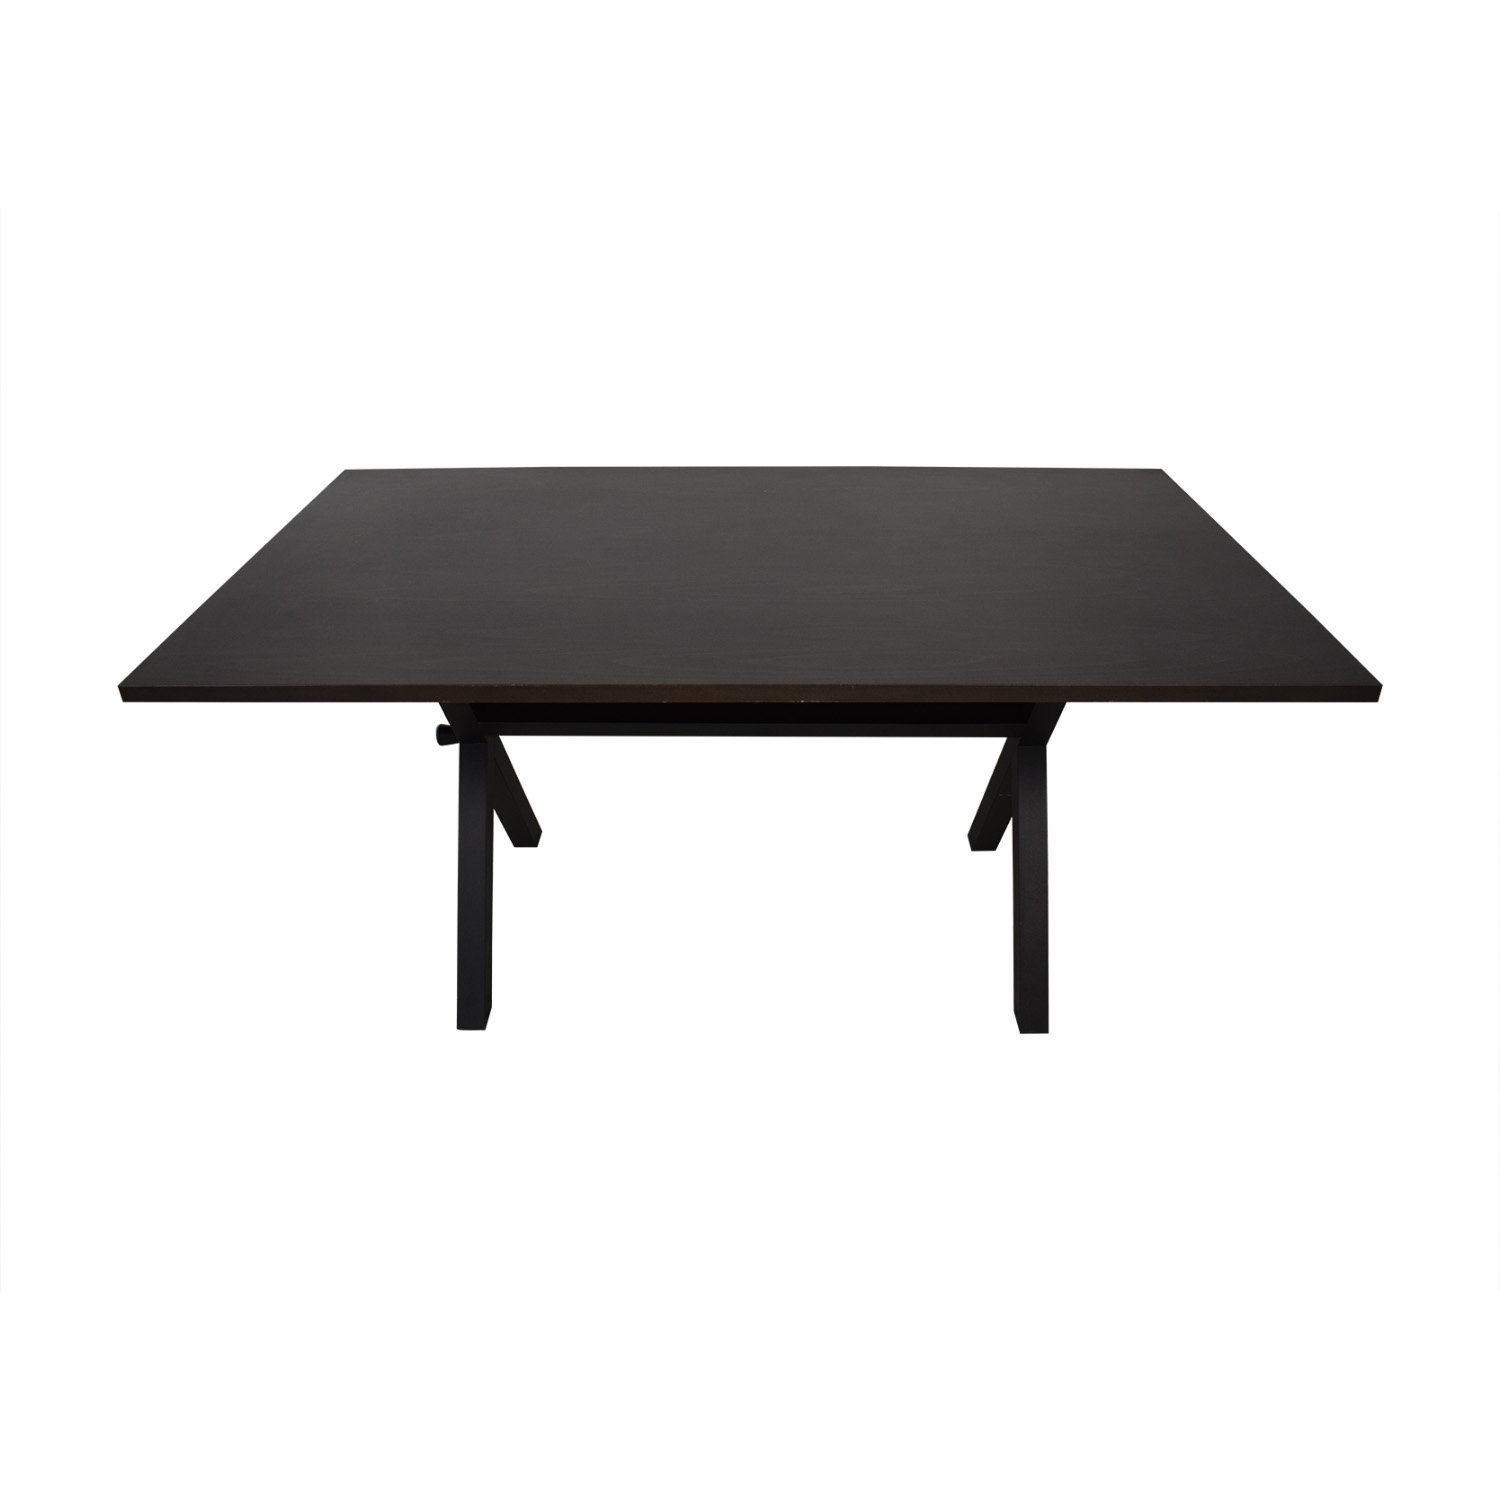 shop Design Within Reach X-Base Dining Table Design Within Reach Dinner Tables